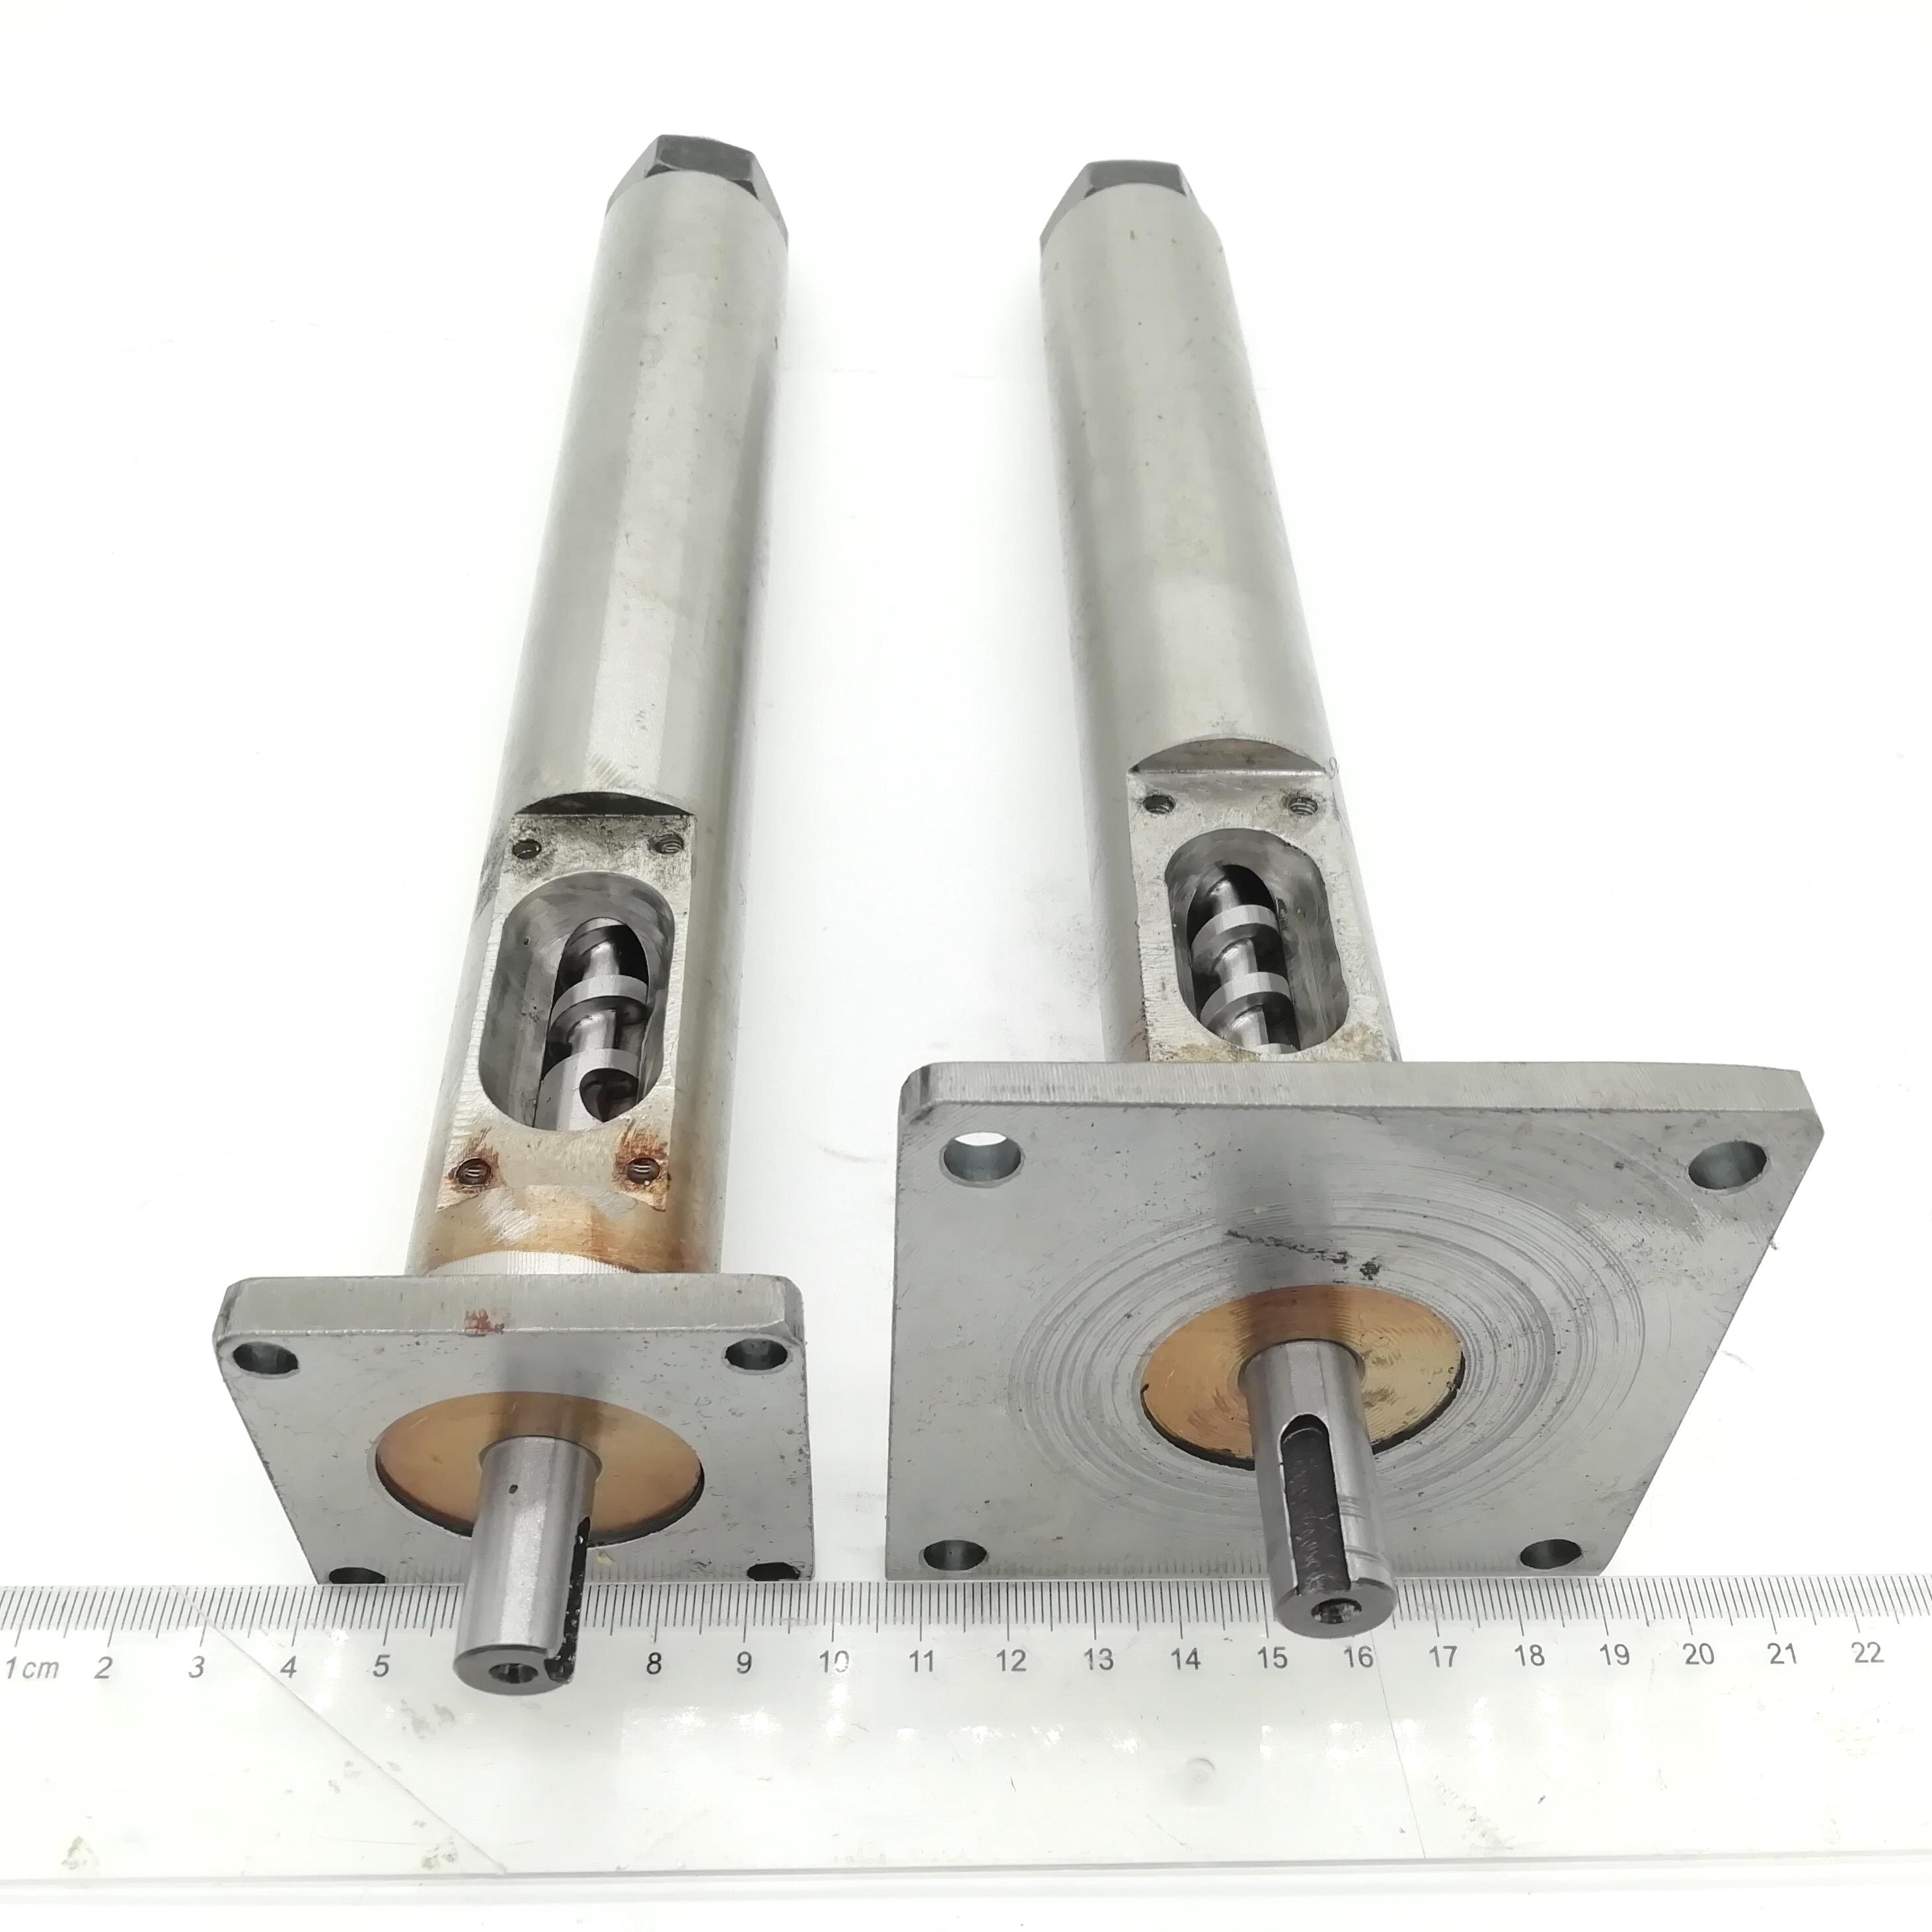 Sold as a set 12mm Dia Extruder Screw Barrel with 1 75 2 5mm Nozzle and 3PCS 35 40 220V Band Heater